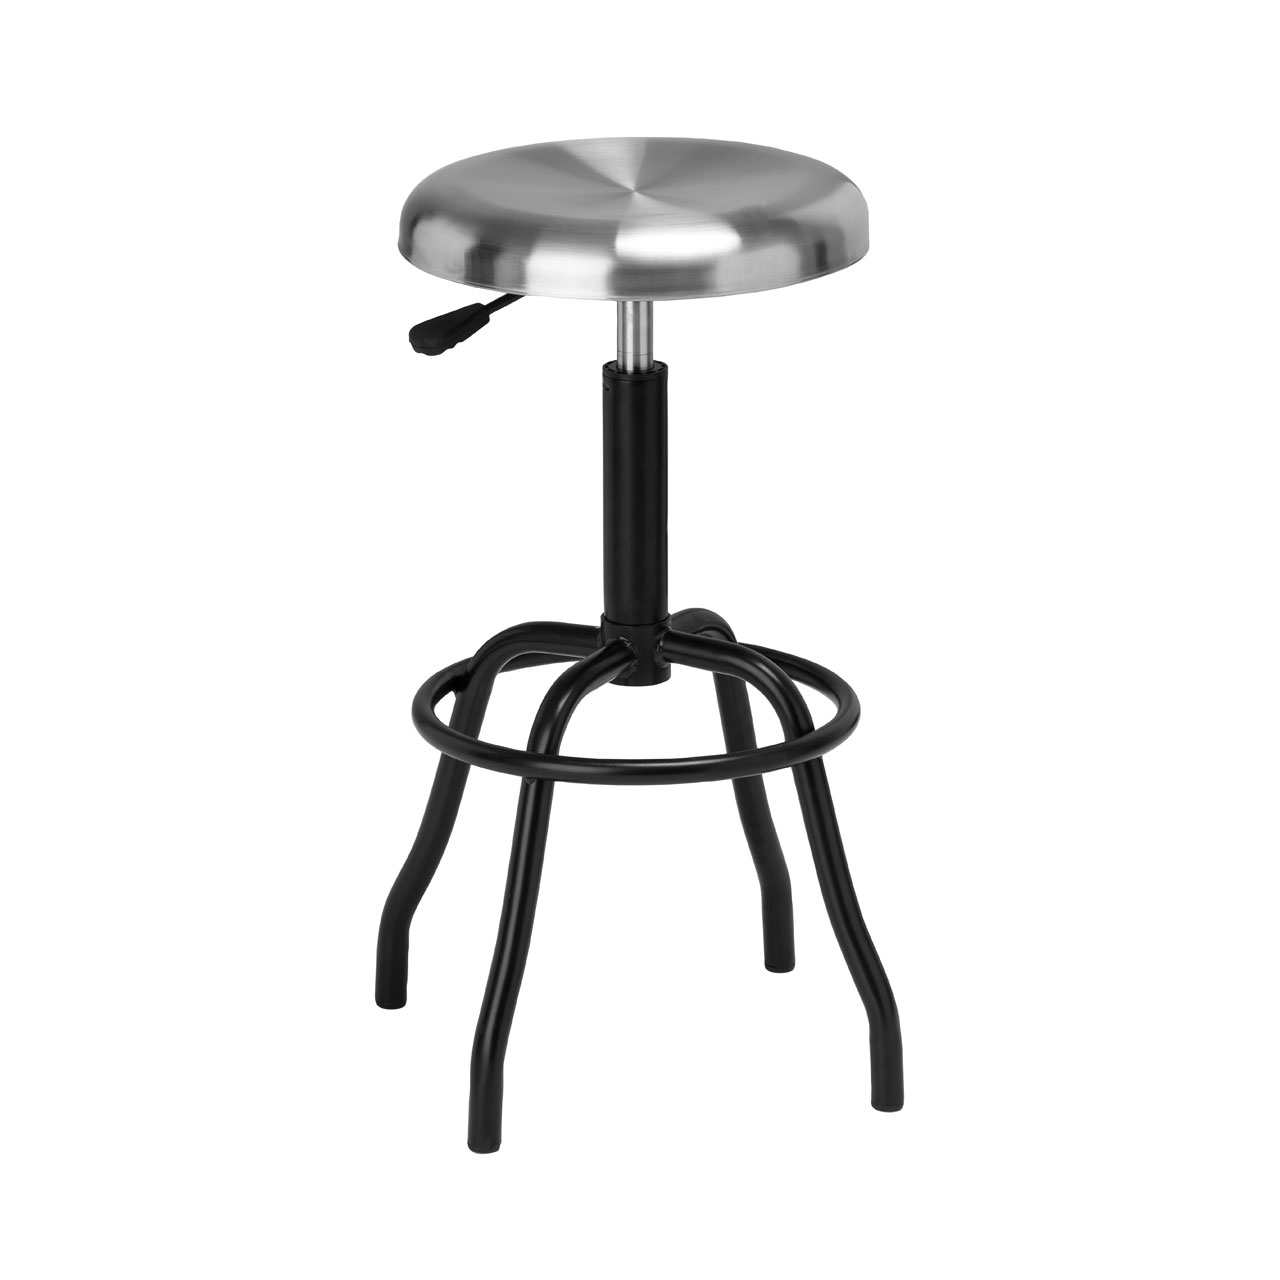 Silver Industrial Bar Stool Brushed Stainless Steel Seat Café ...